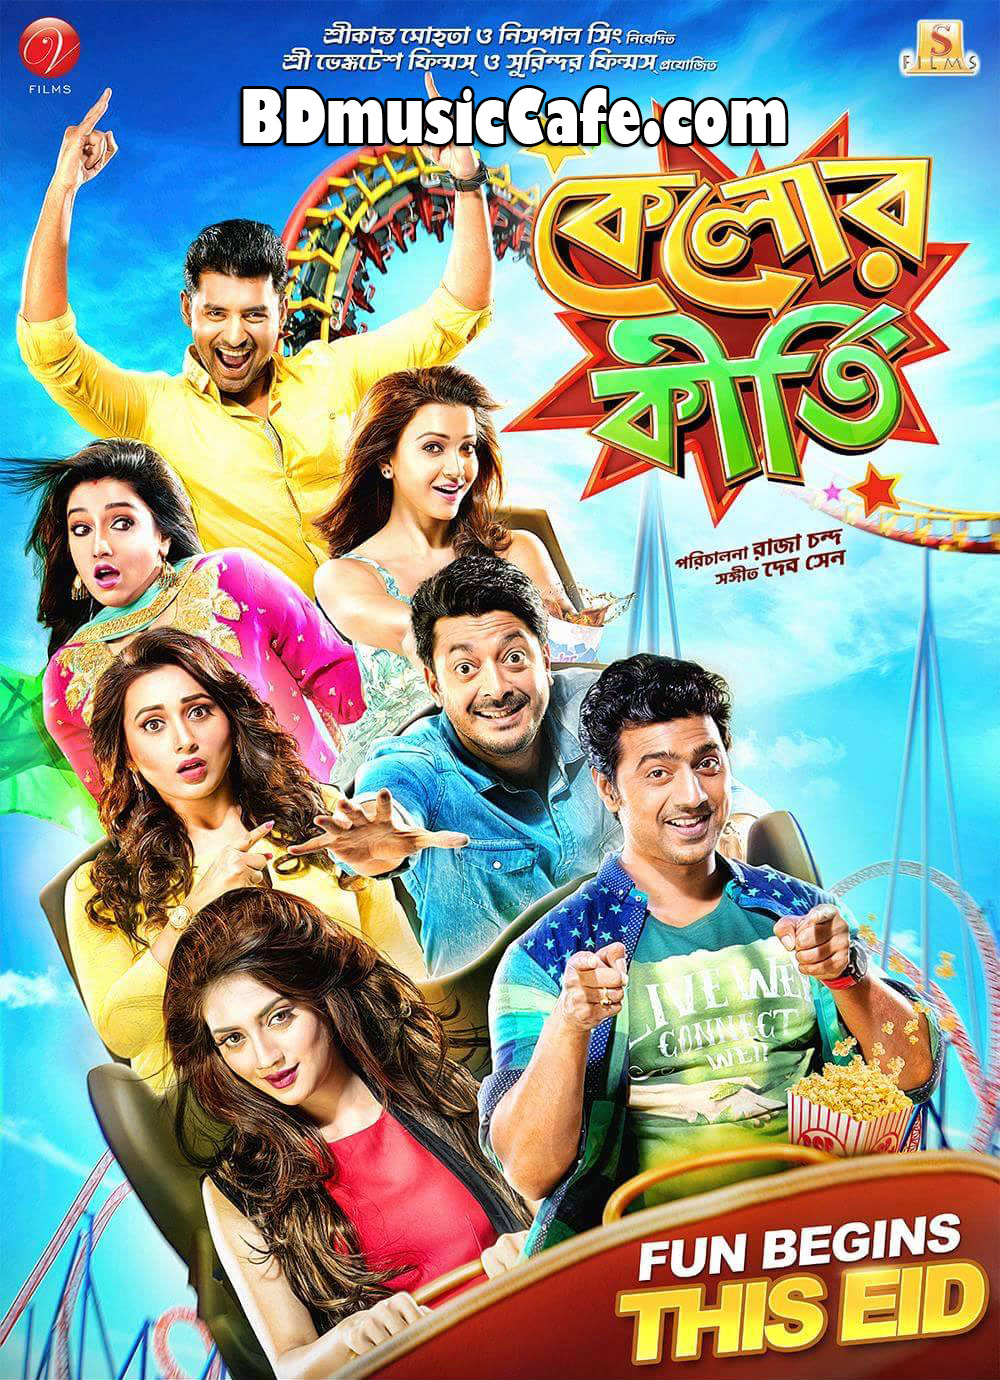 Kelor Kirti [2016] Full Movie Watch Online Free Download